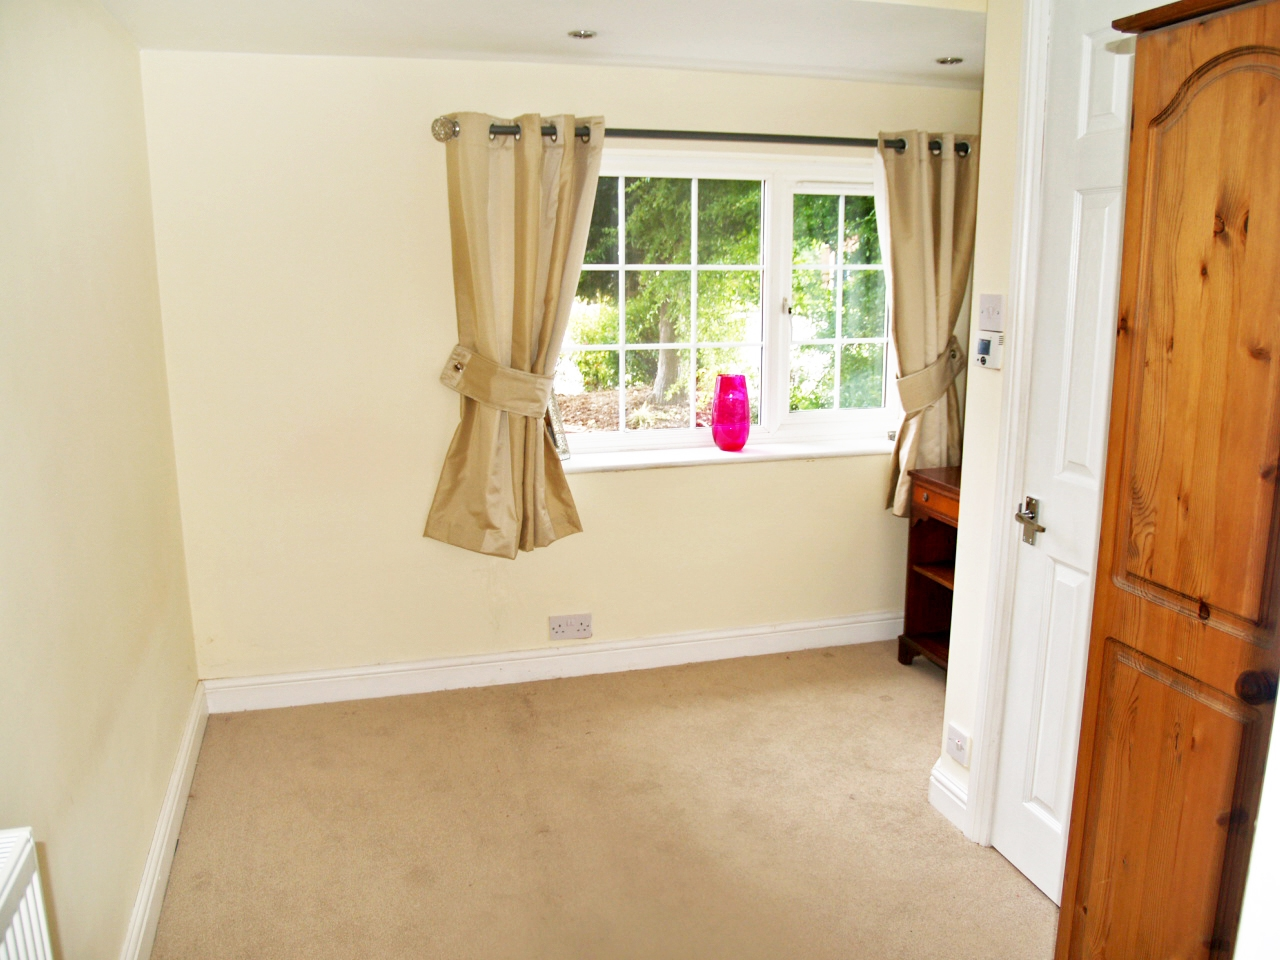 5 bedroom detached house SSTC in Solihull - photograph 16.